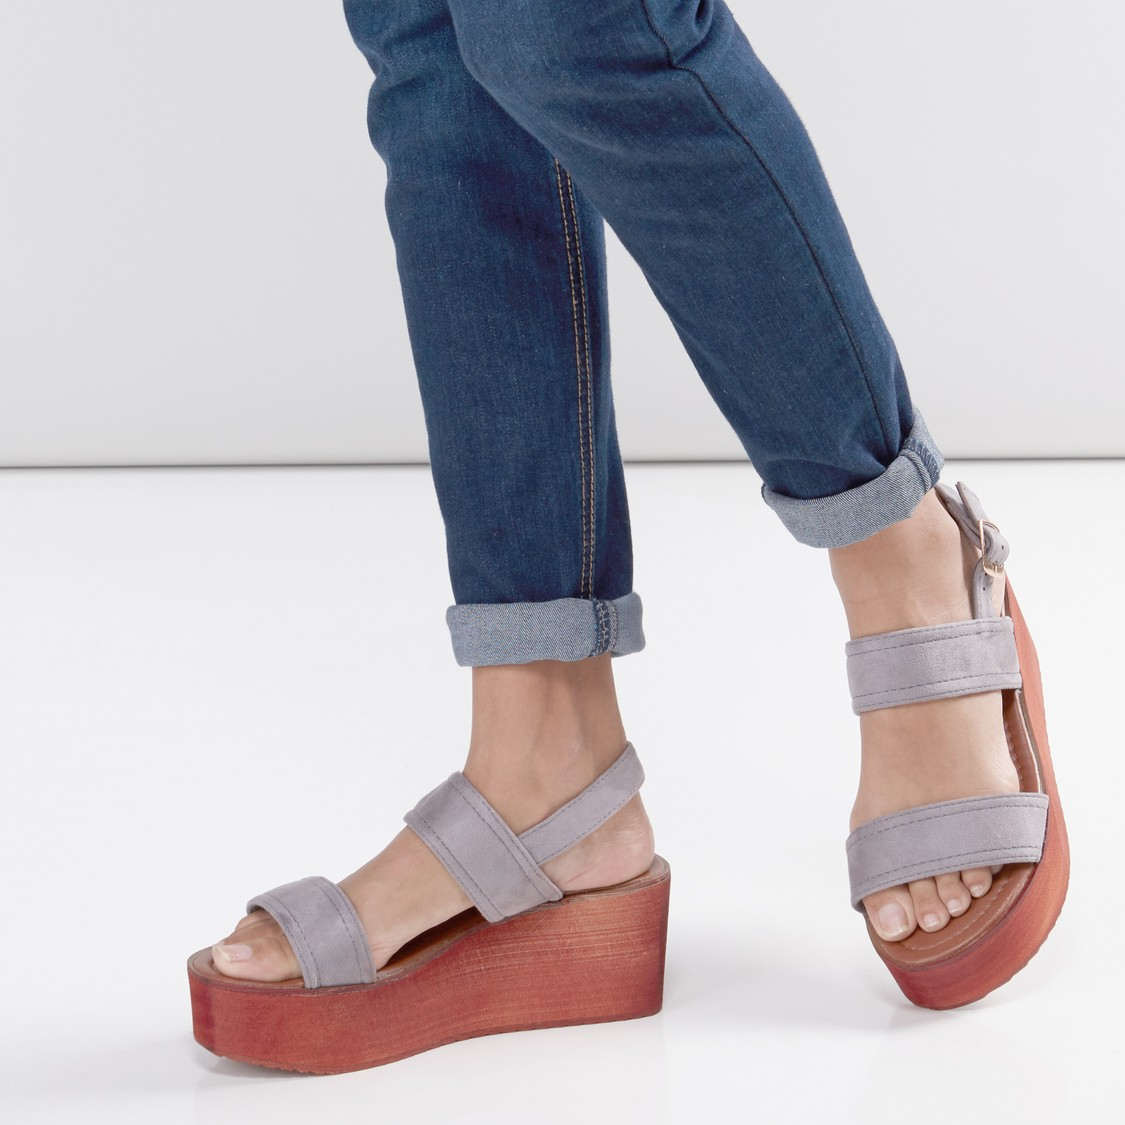 Dual-Strap Wedges with Pin Buckle Closure